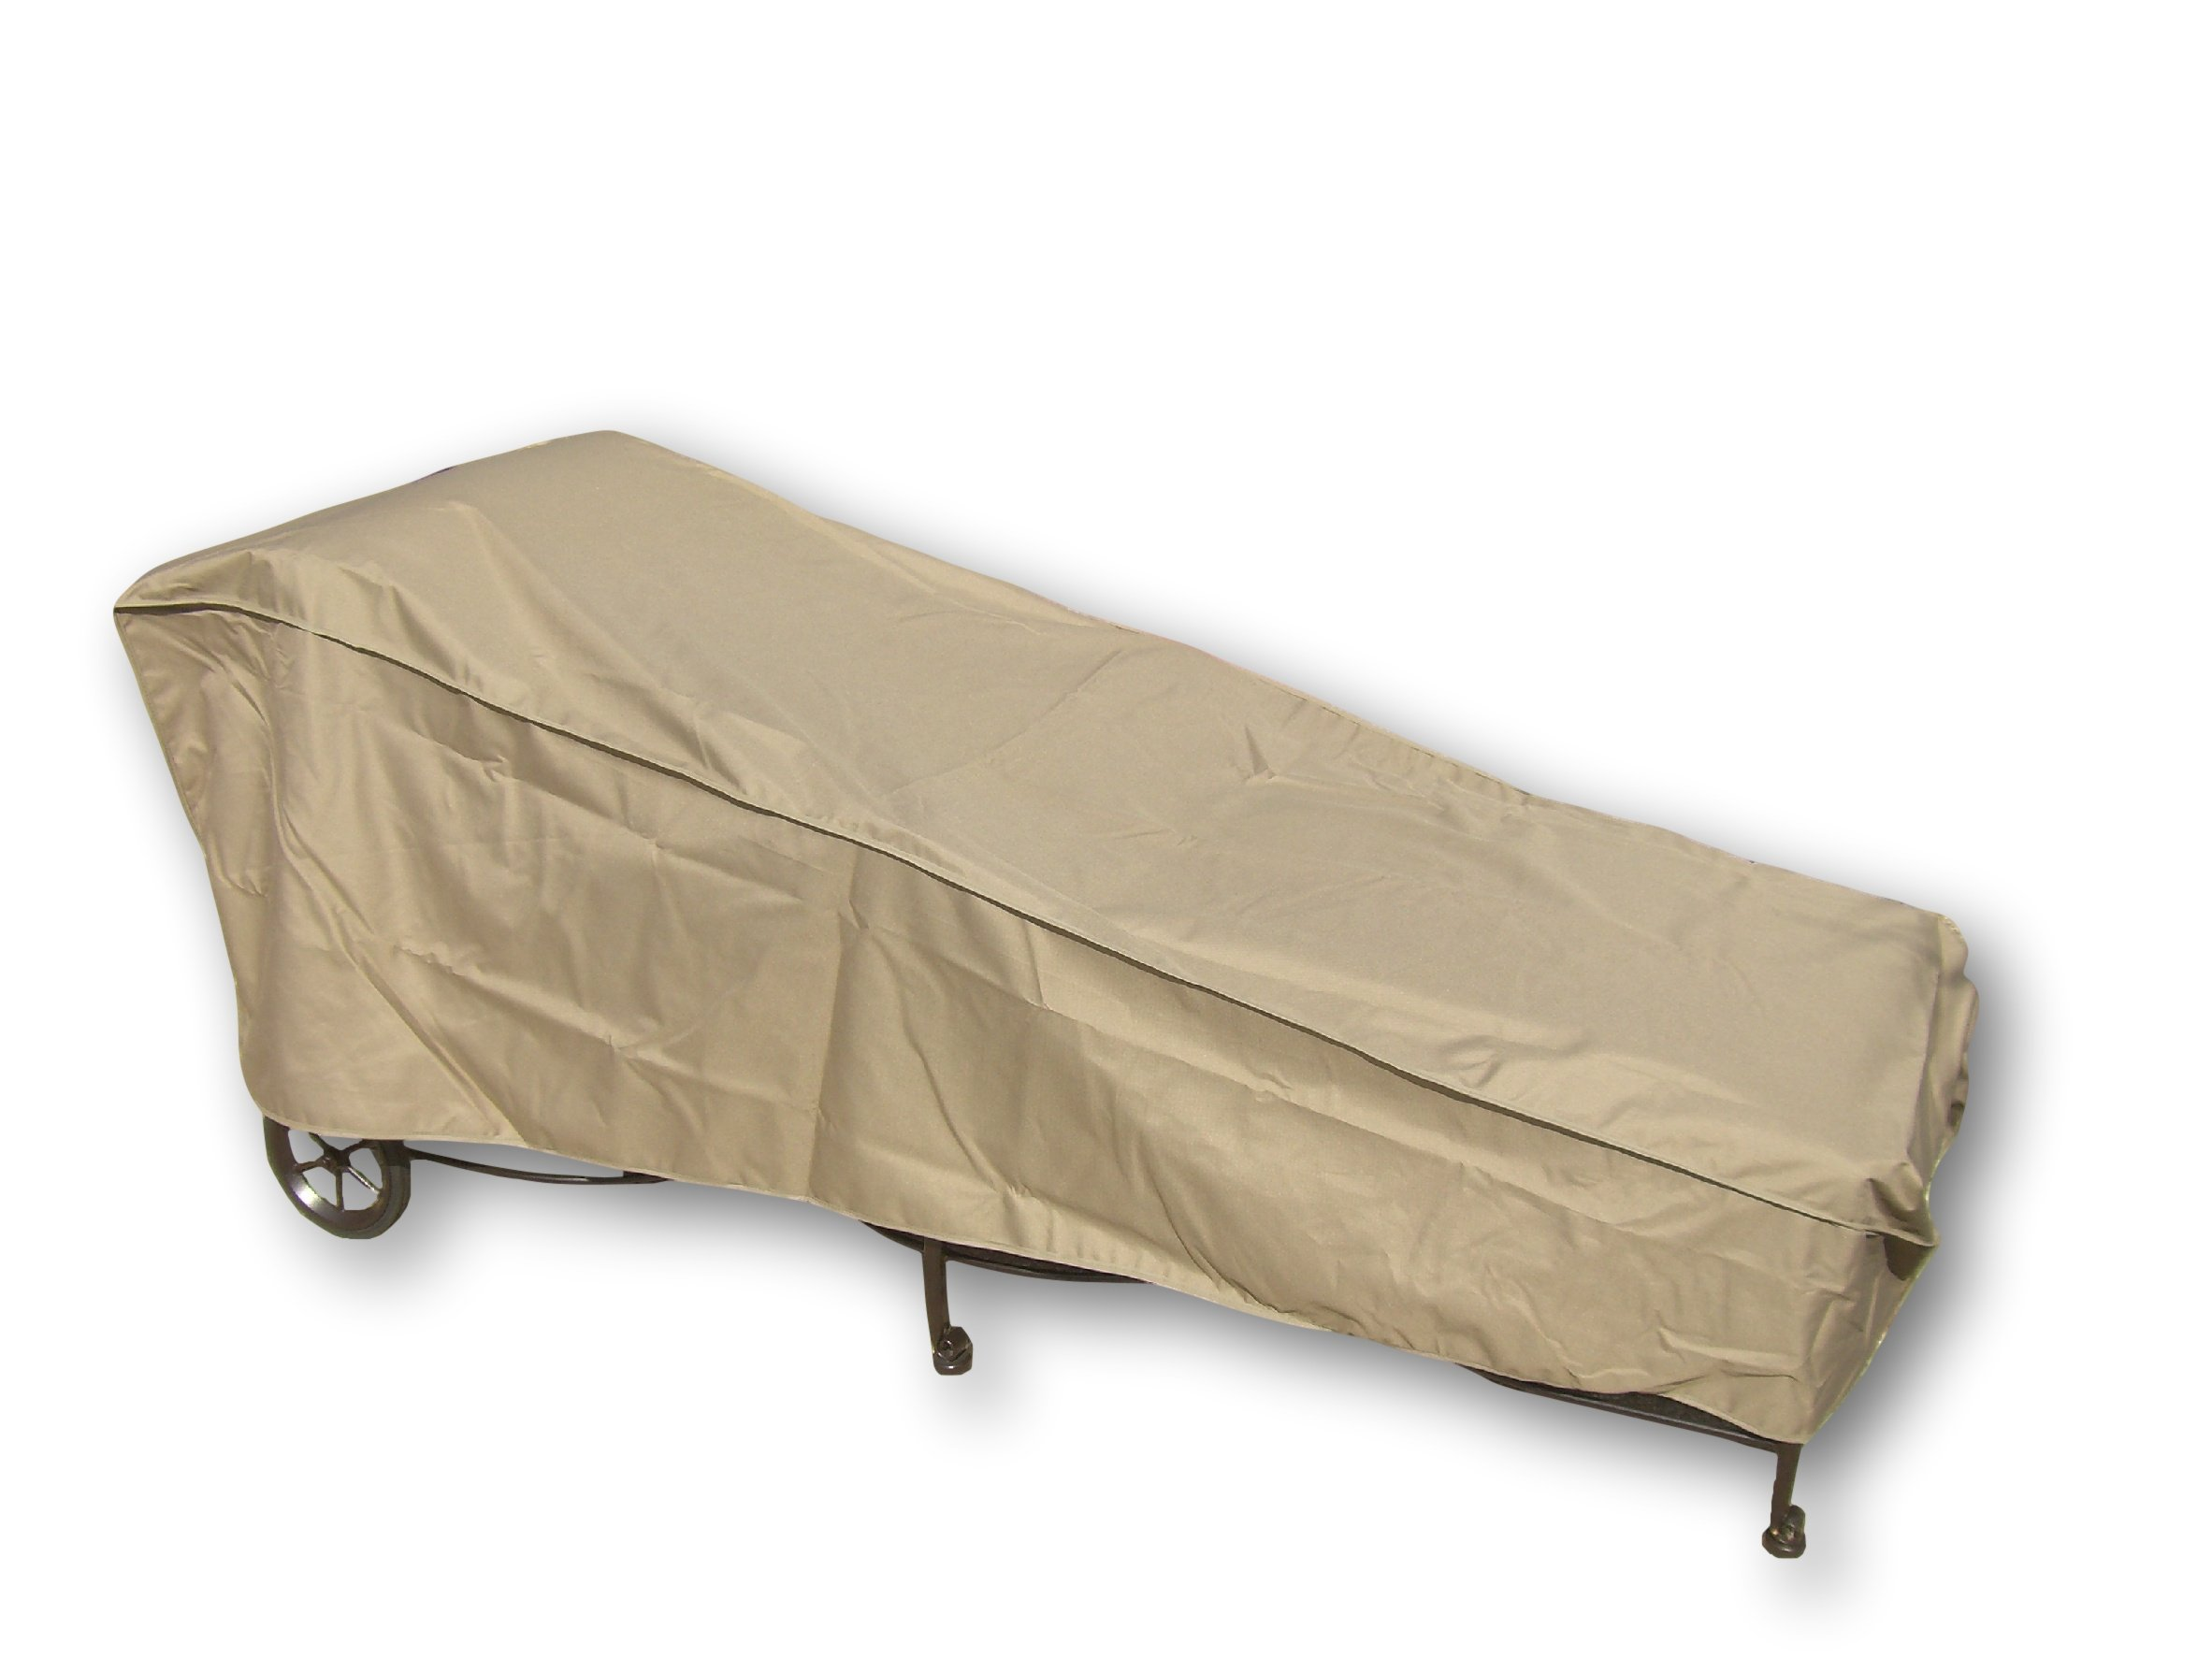 SUNMART Patio Chaise Cover - Protect Your Furniture from UV Mildew Mold Water Damage with Adjustable Velcro Fit - 84''L x 30''W x 29''H in Taupe